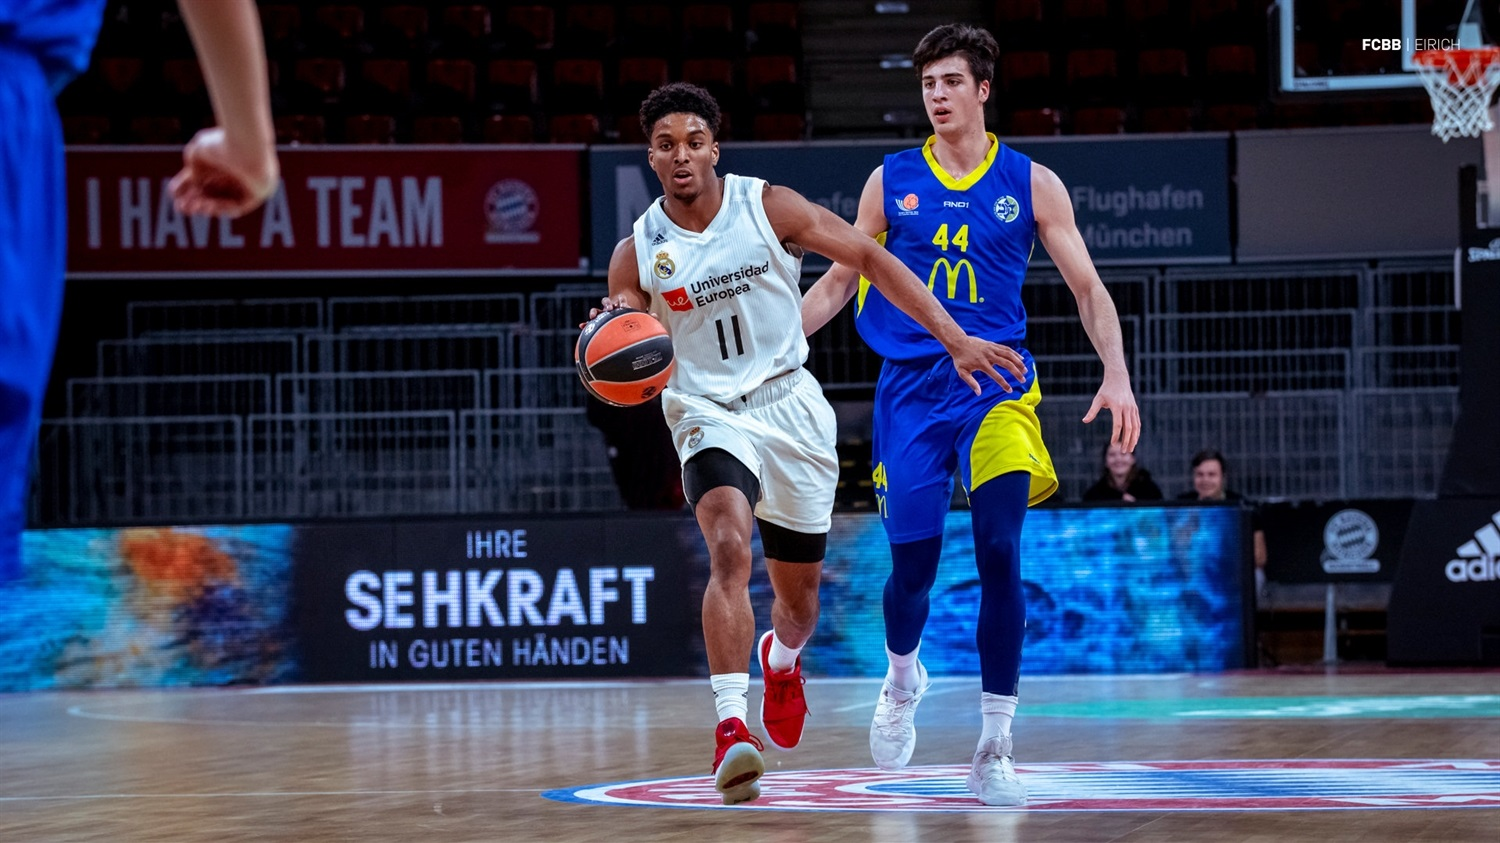 Kareem Queeley - U18 Real Madrid - ANGT Munich 2019 (photo FCBB - Eirich) JT18